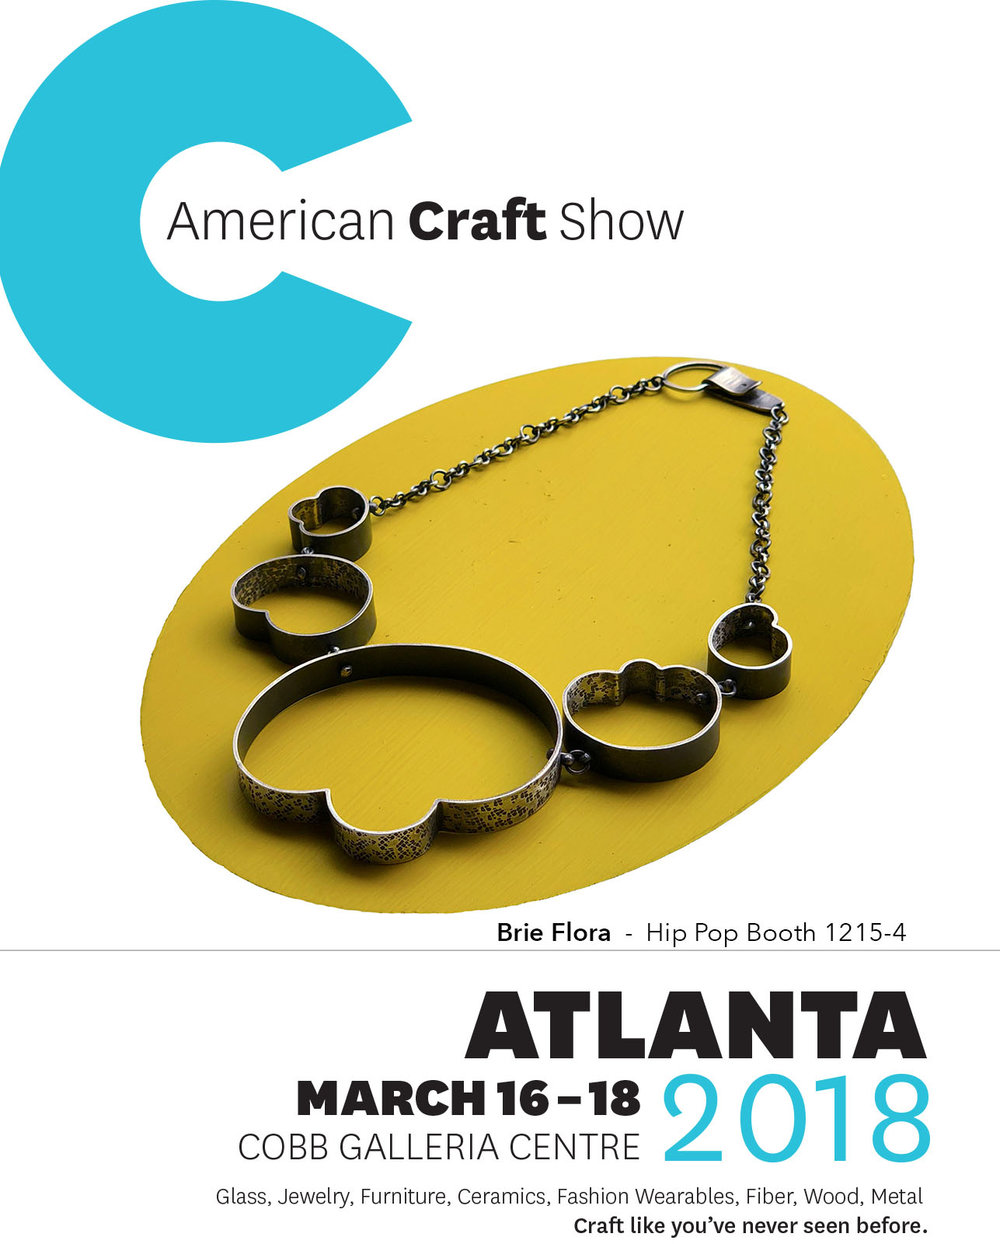 Im showing in Atlanta - Come say hey!